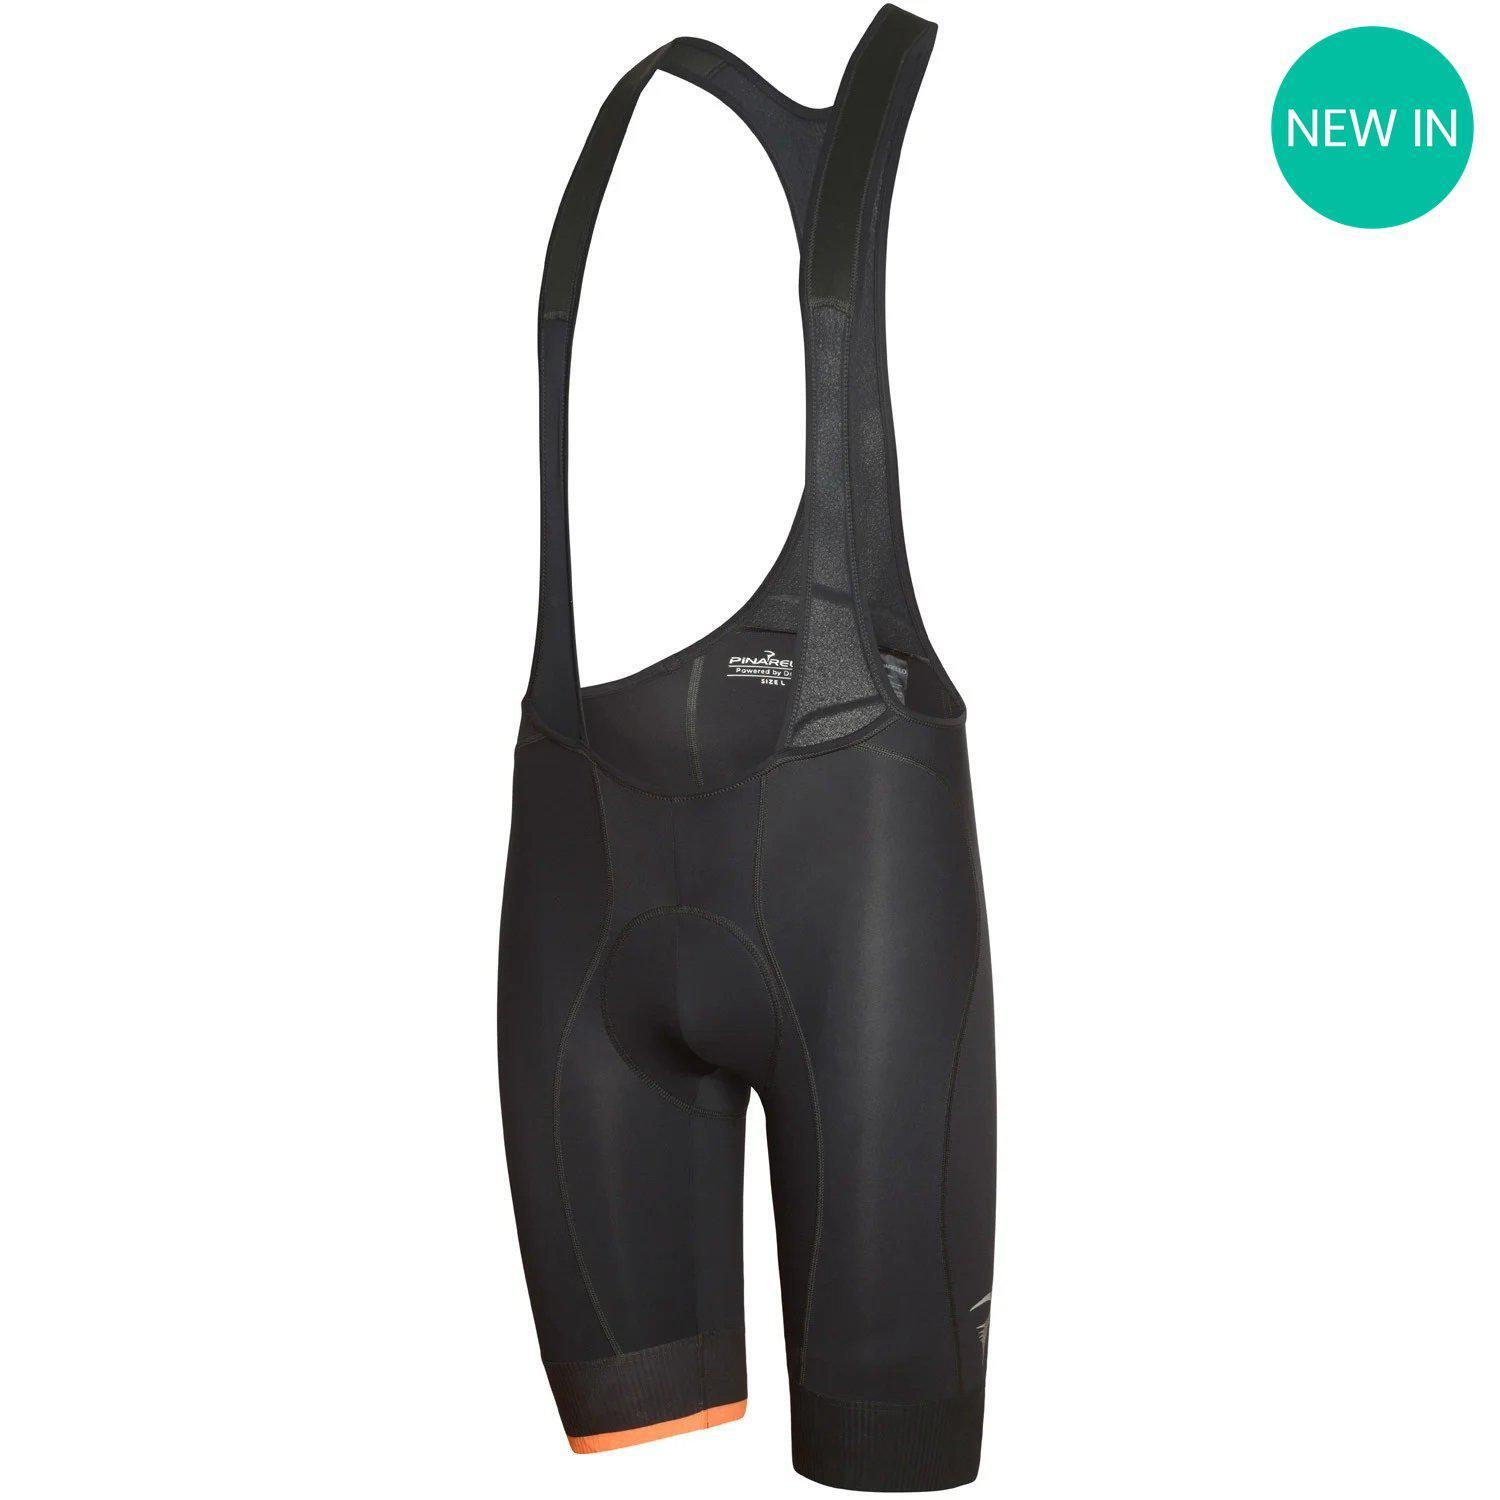 Pinarello Dotout Power Bib Shorts #iconmakers SS19 - All Sizes currently in Stock